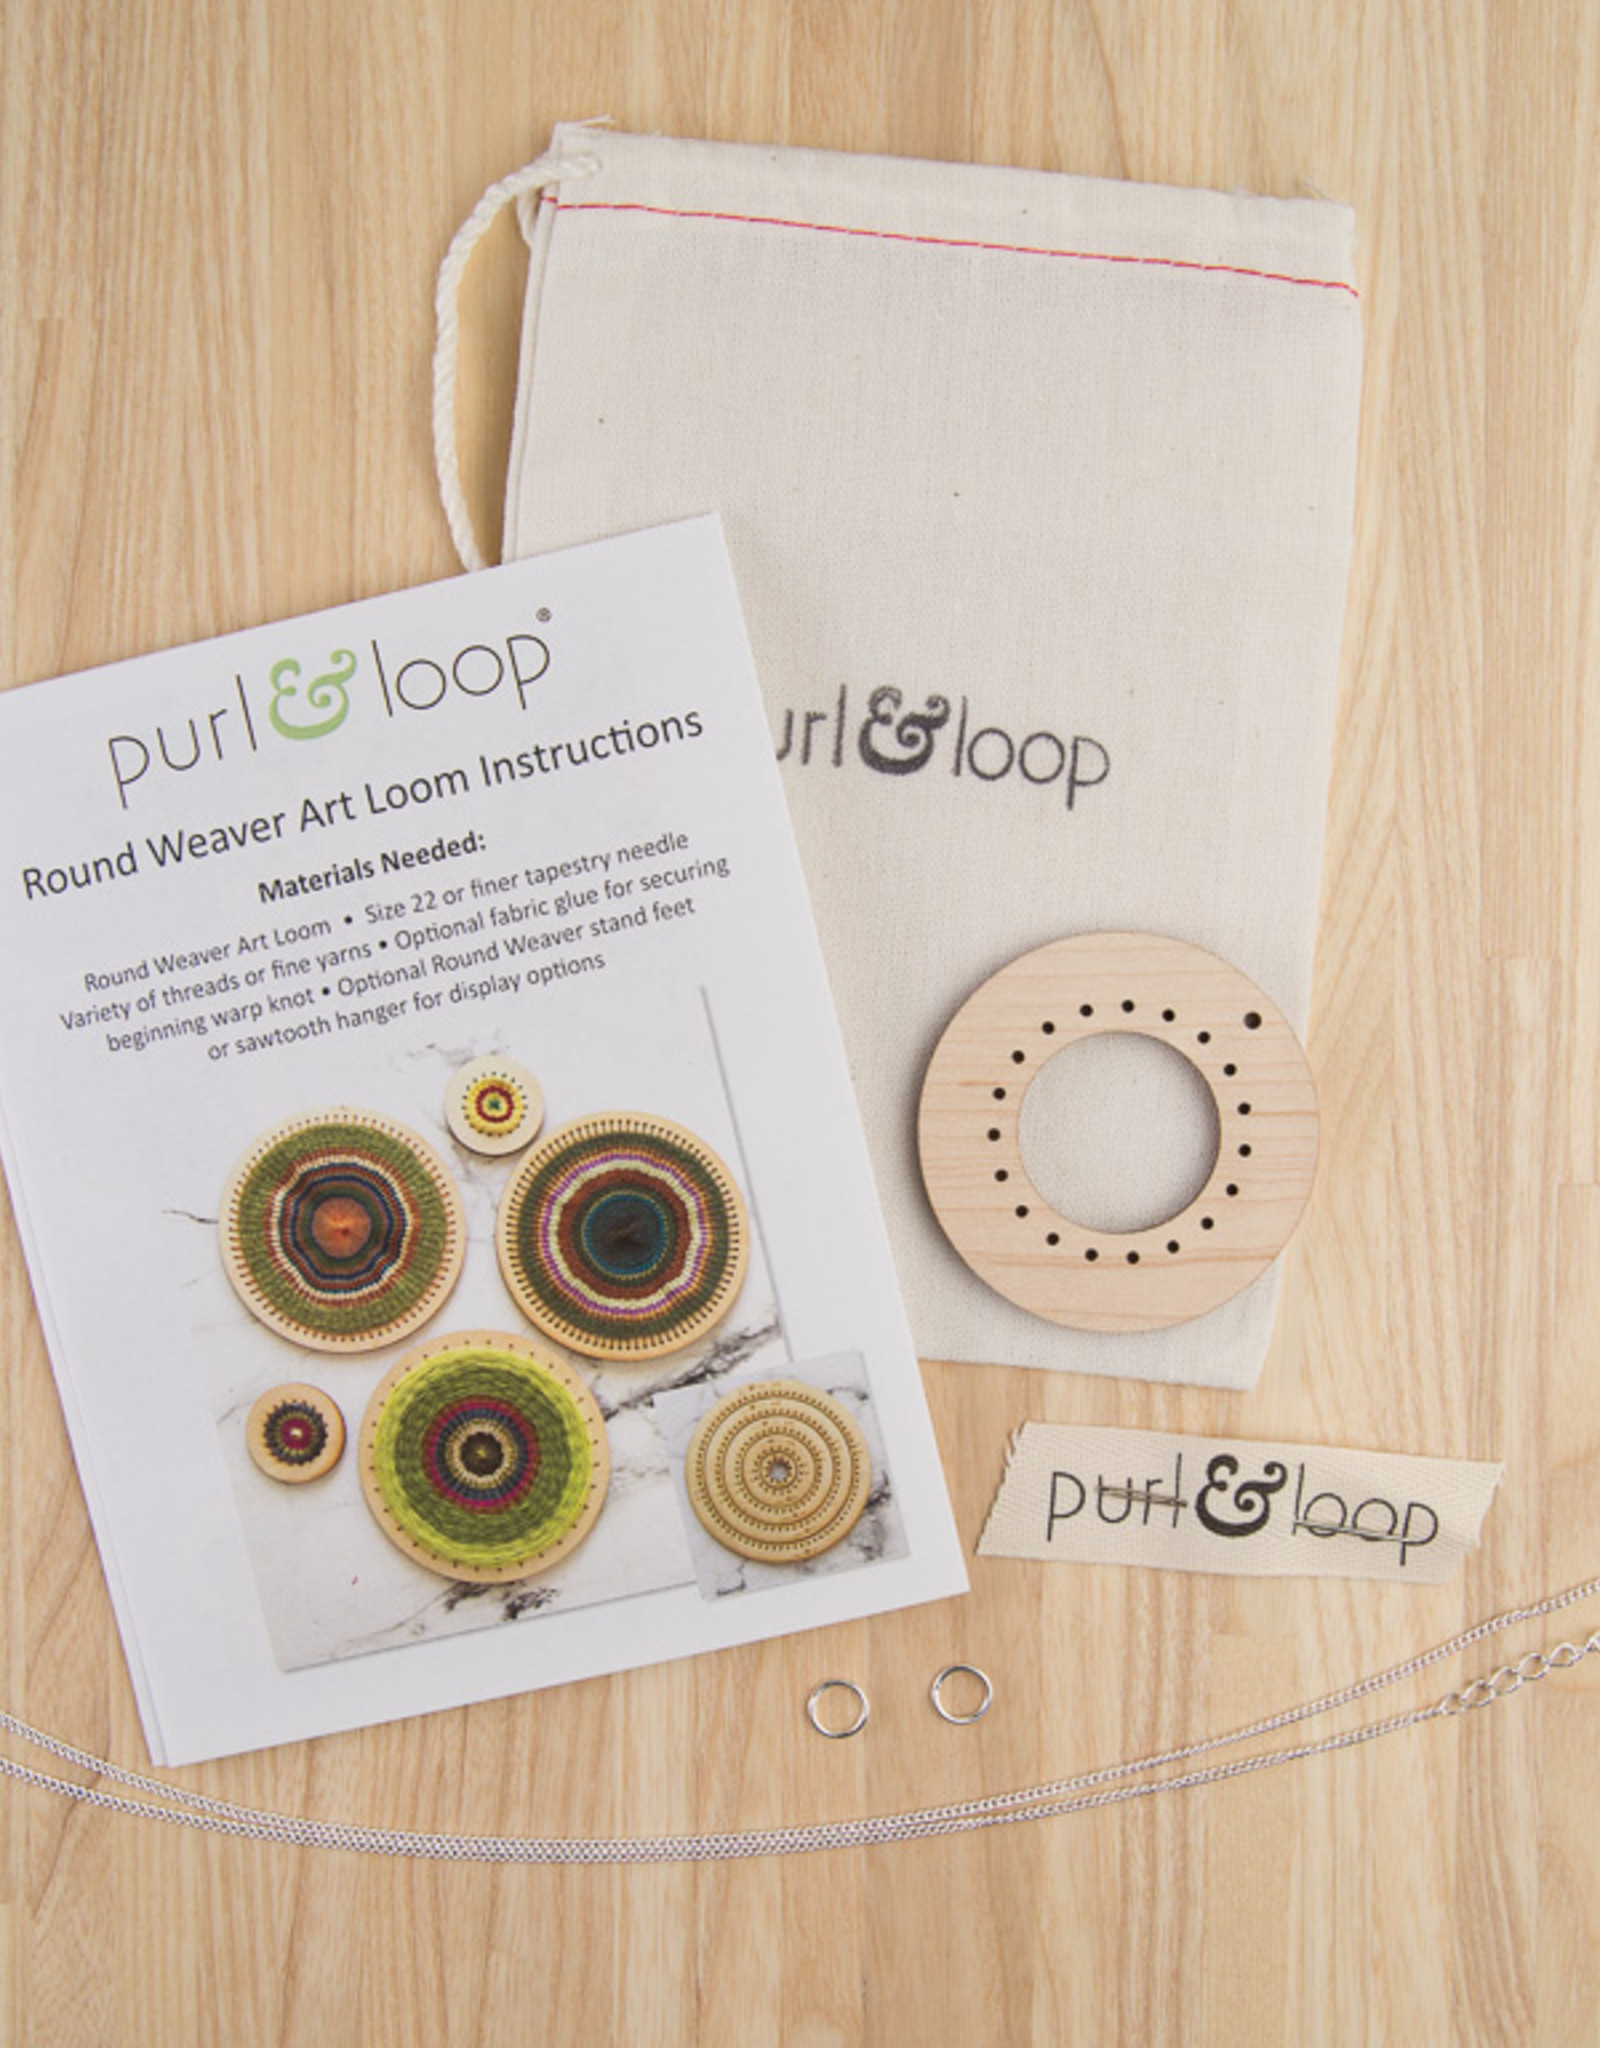 Purl & Loop Purl & Loop Pendant Necklace Kit 2 inch